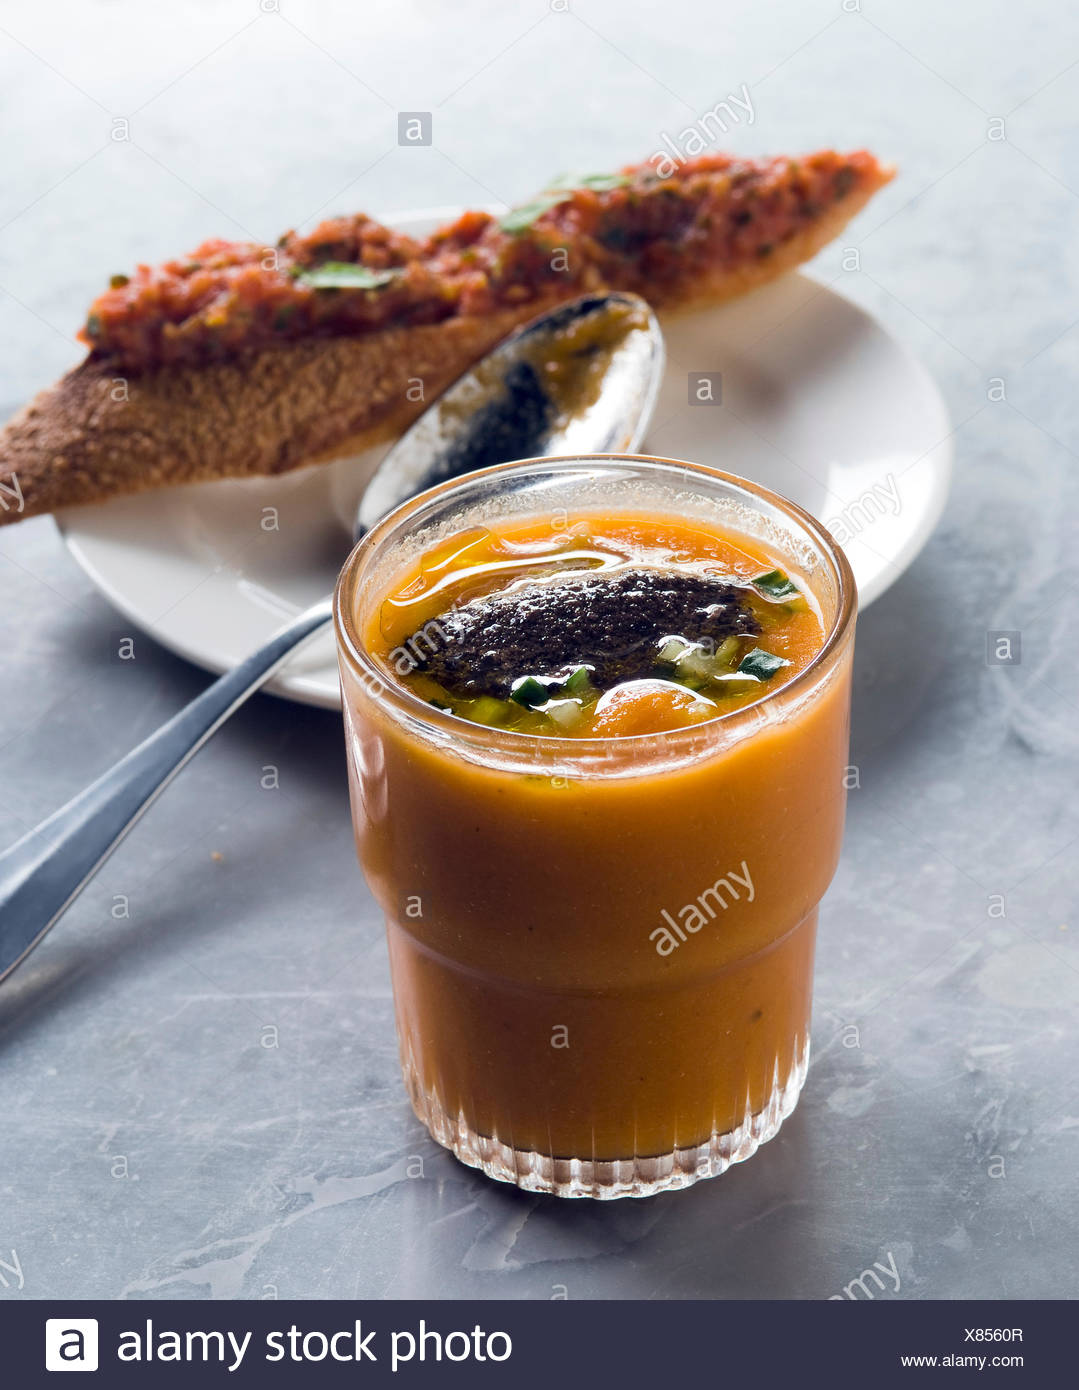 Andalusian gazpacho with a quenelle of black olives and a bruschetta - Stock Image